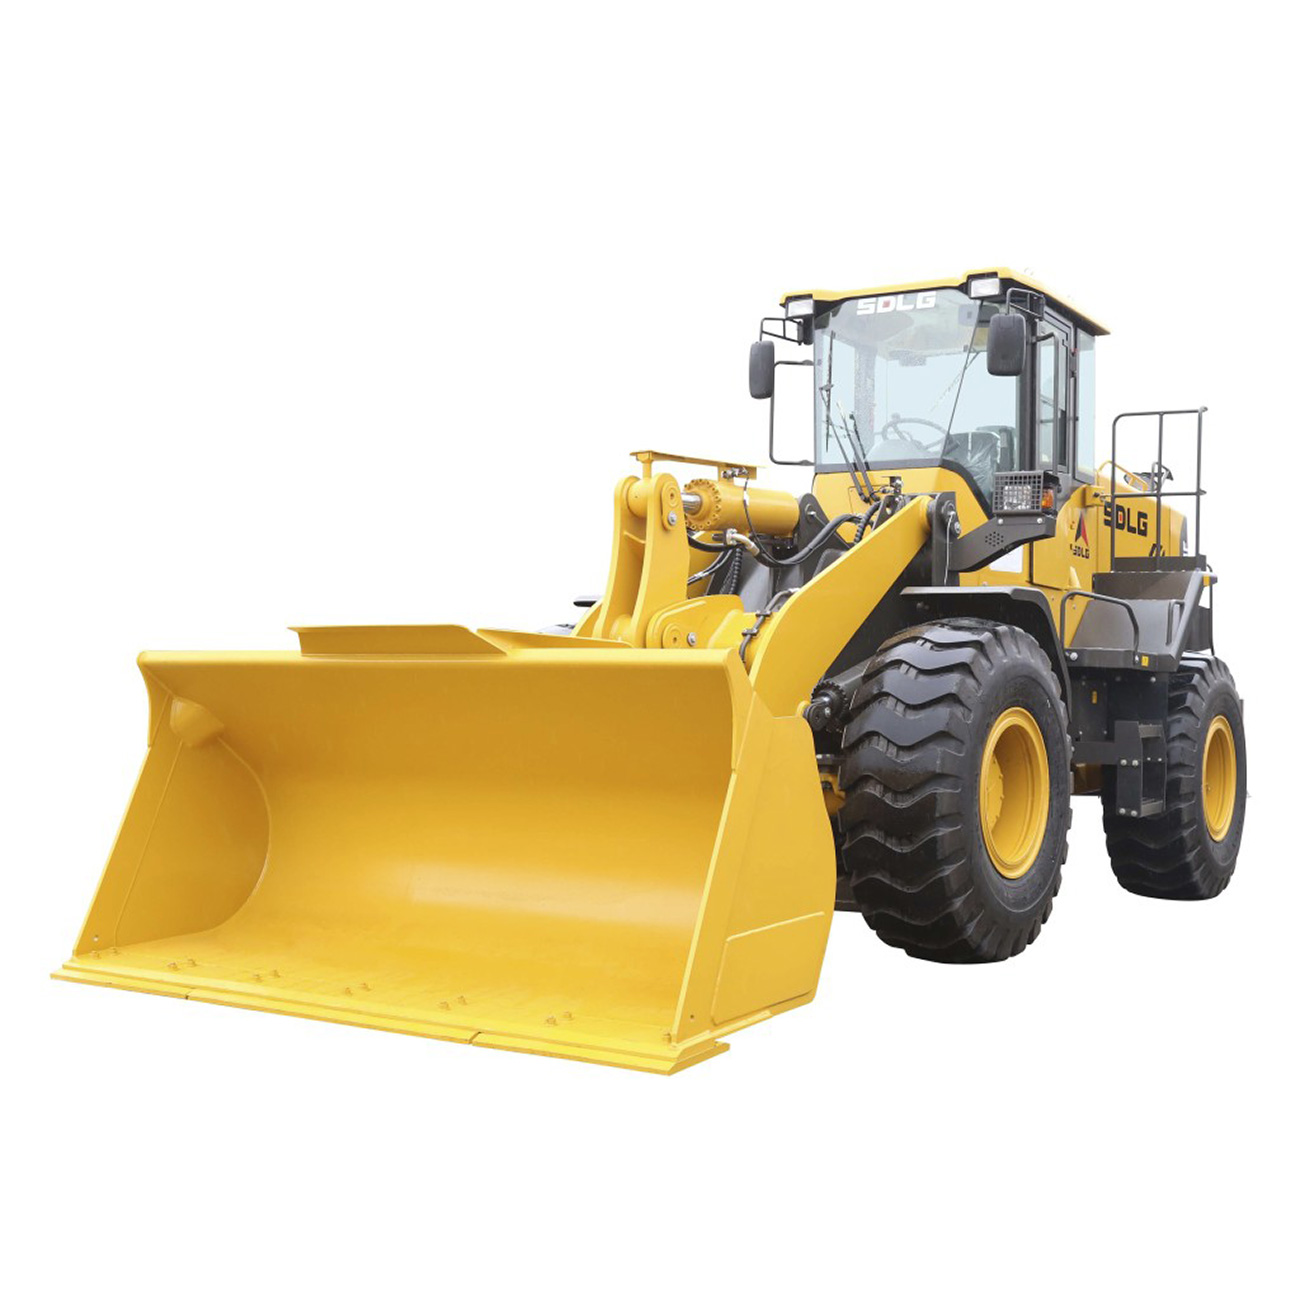 SDLG Front End Loaders for Construction, Material Handling